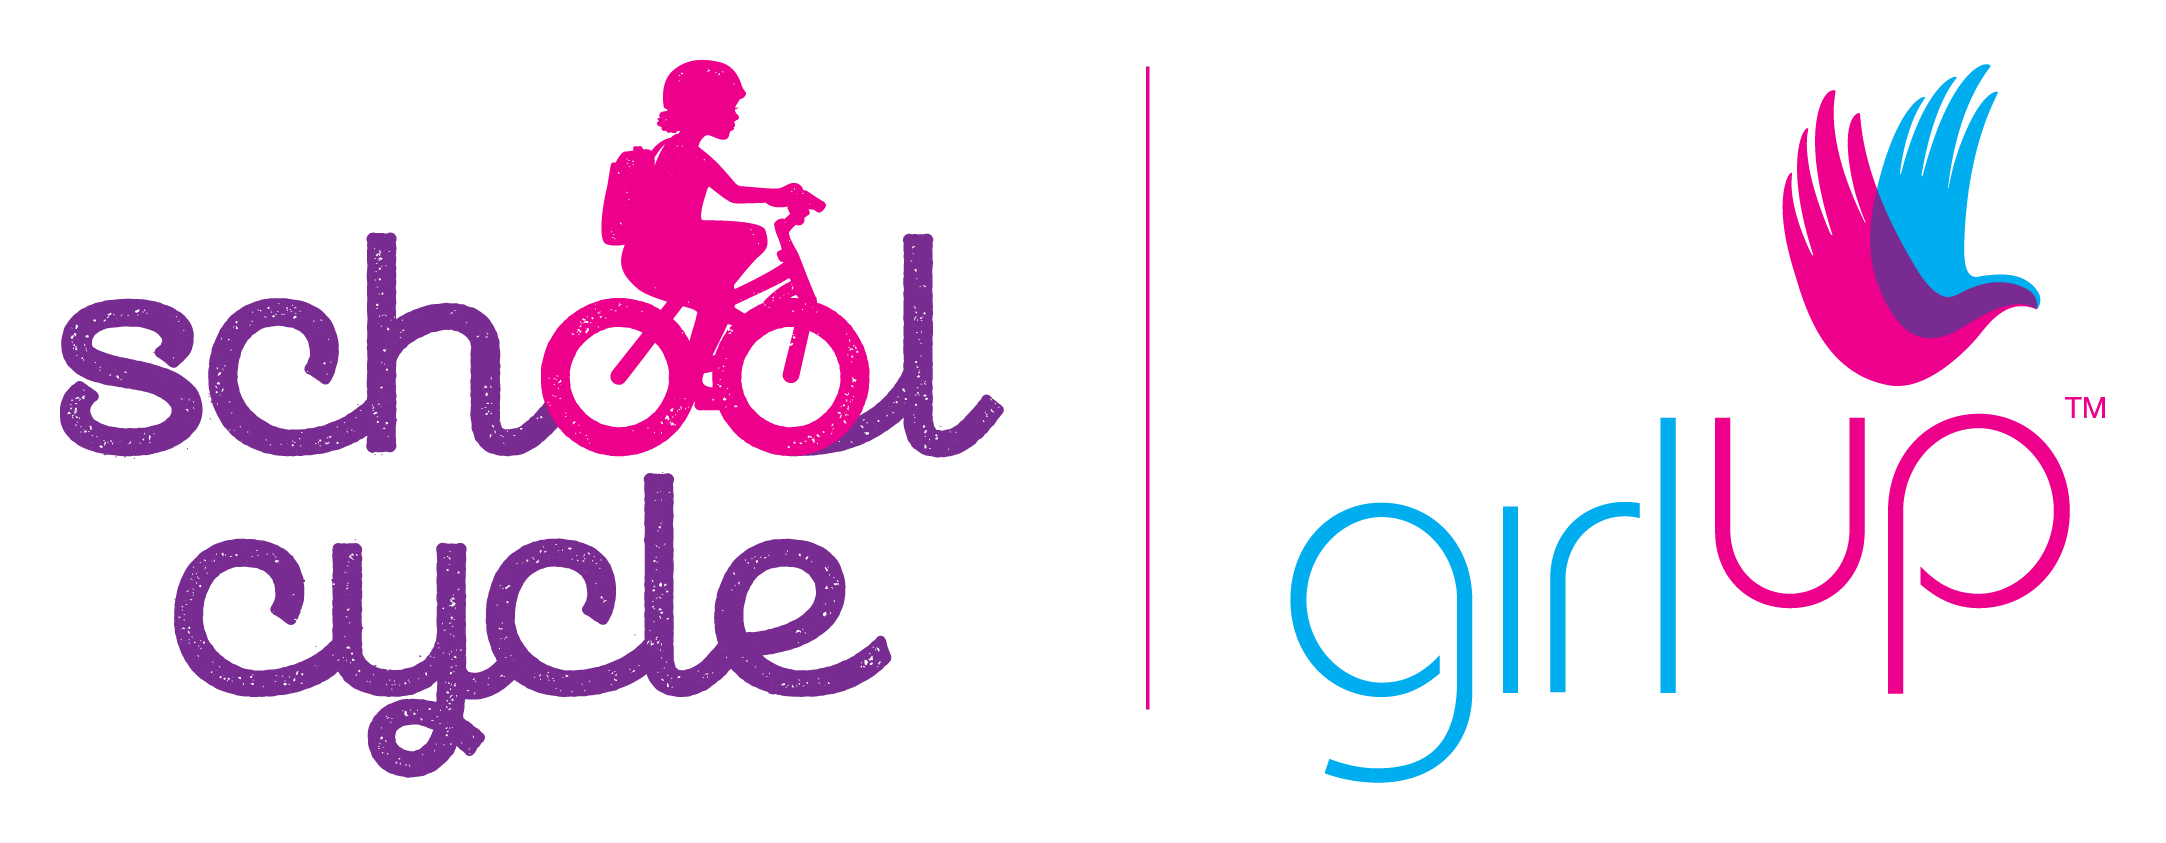 1906-School-Cycle-Logo-FNL-GirlUp-Horiz-Lockup